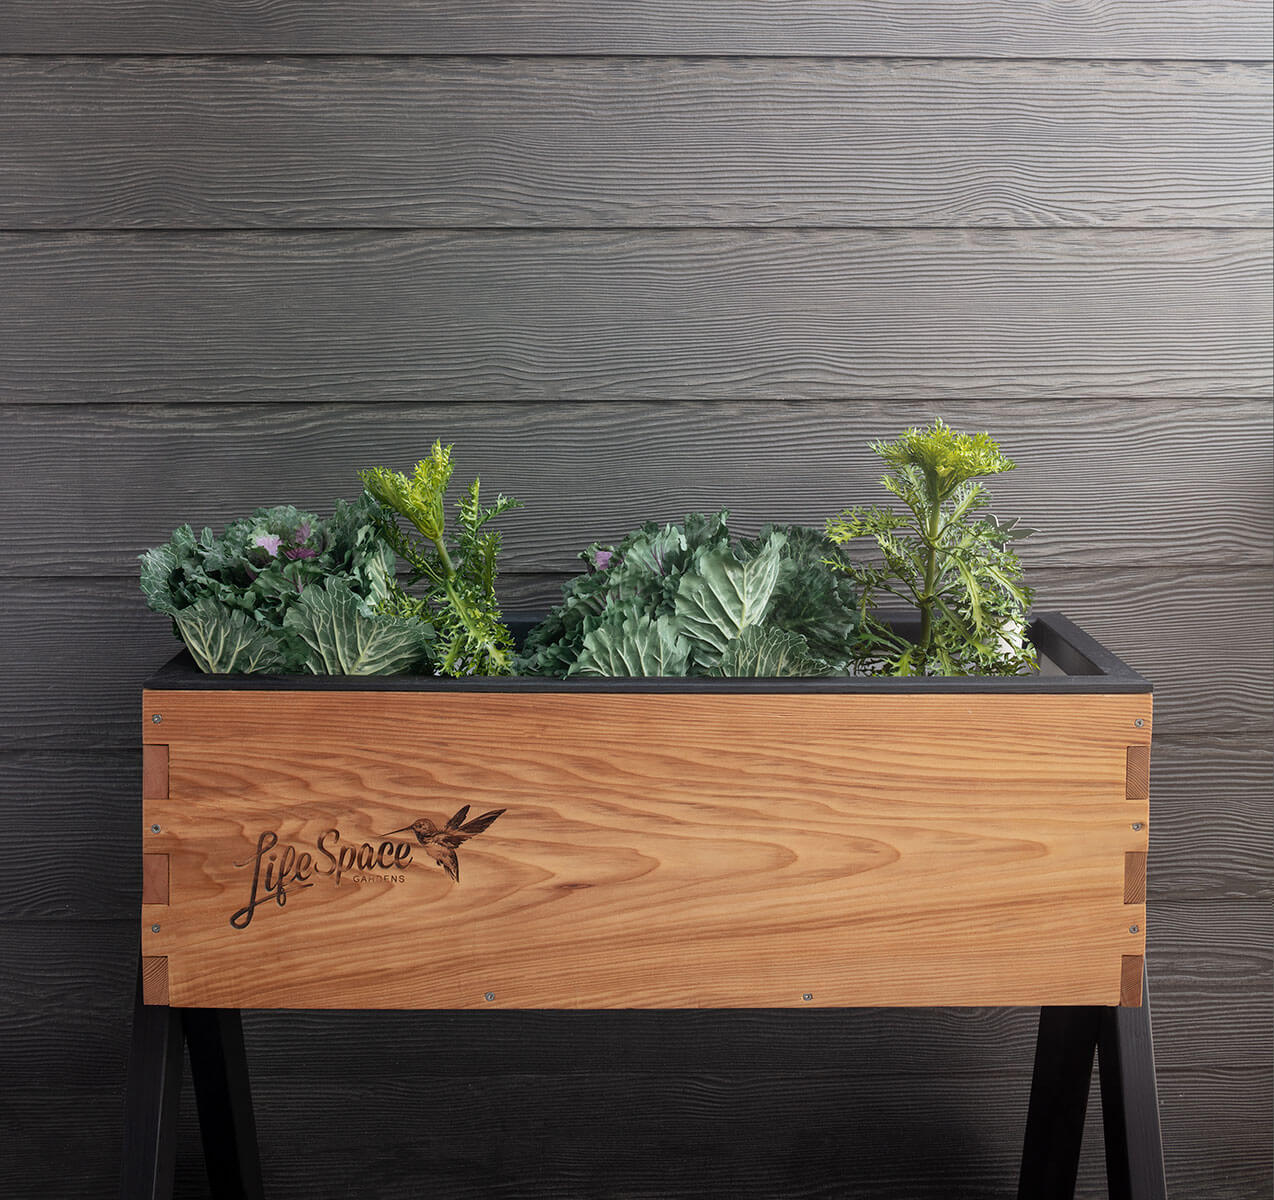 marine and fell deck planter